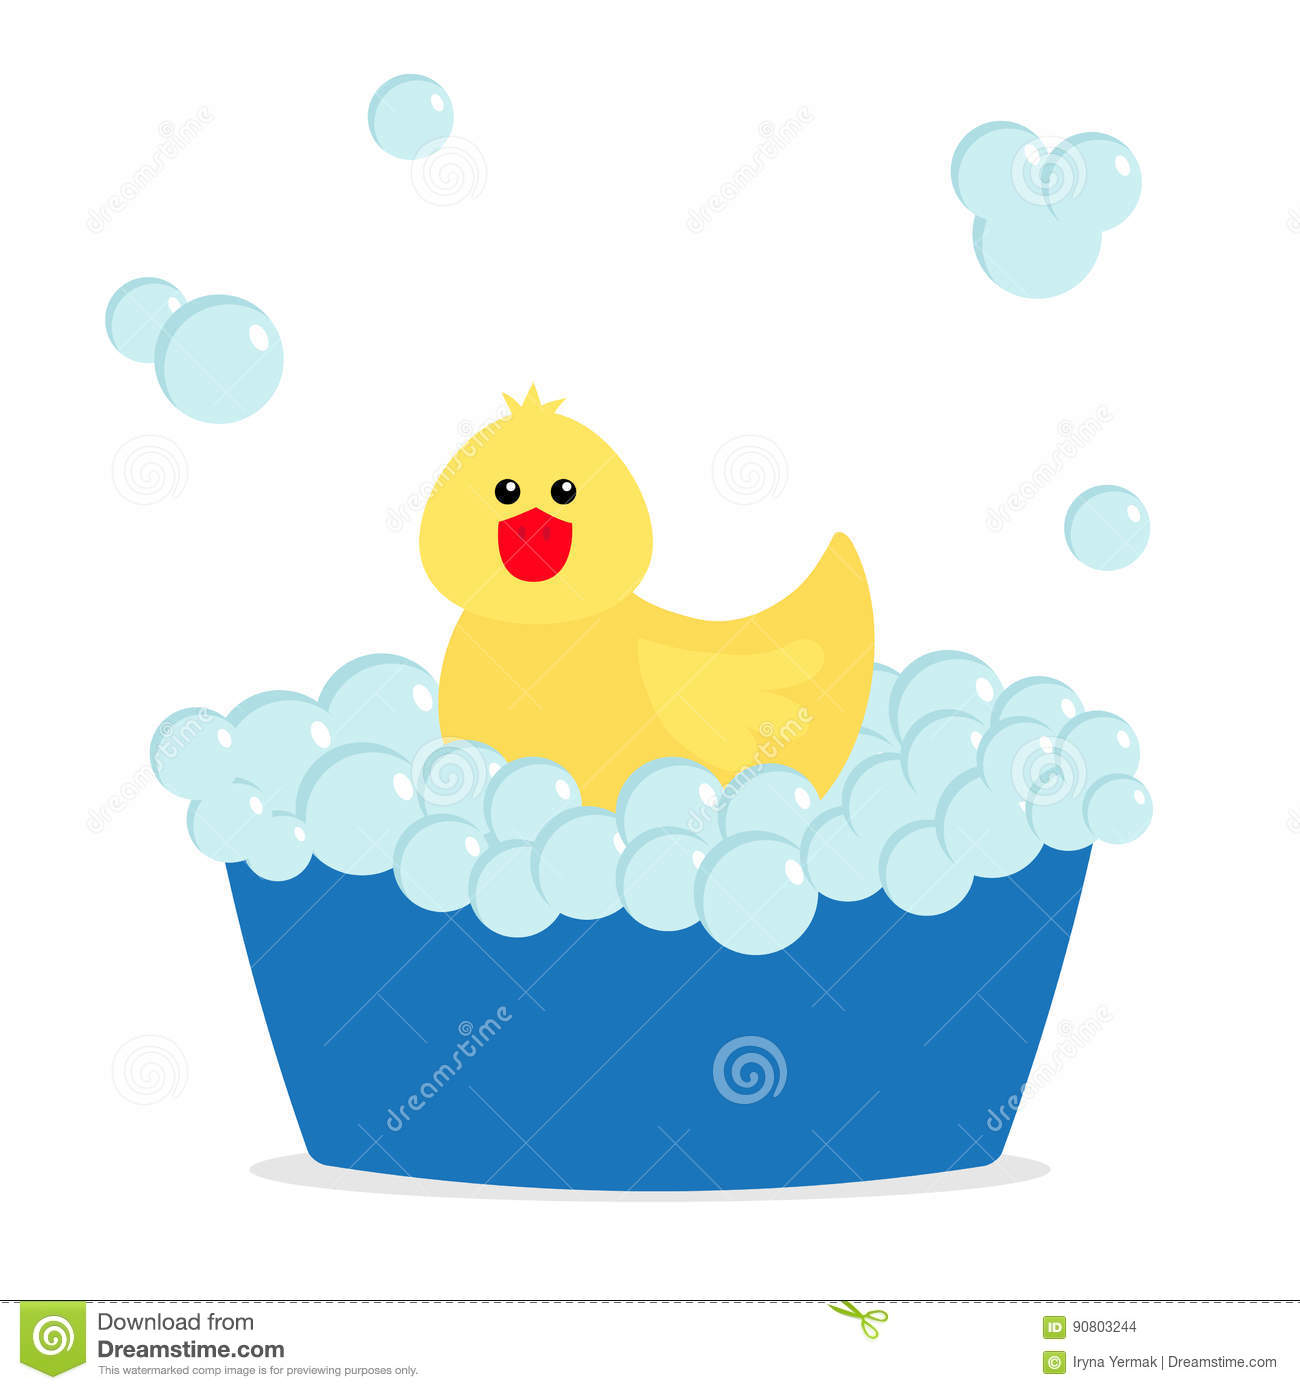 Bath Bubbles Cartoon Free Vector Graphic On Pixabay: Yellow Duck In Bathtub With Bubbles Vector Illustration